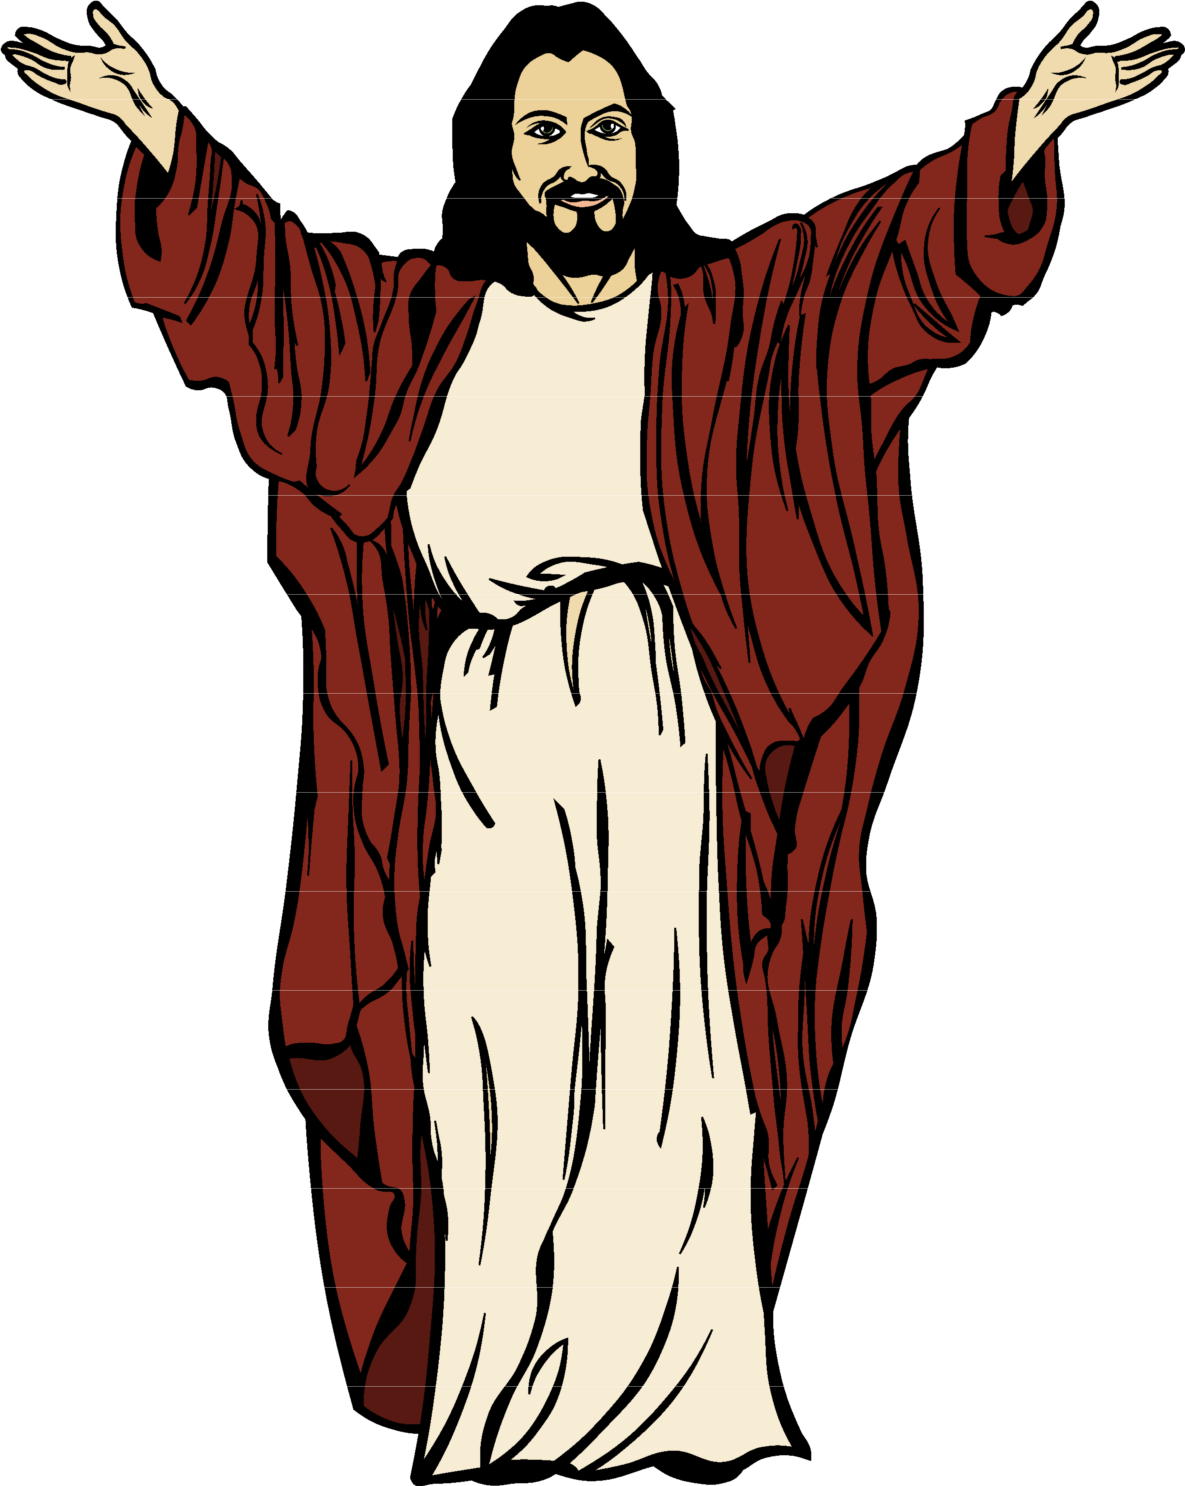 Download Christ Drawing Cartoon Jesus Free Clipart HD HQ PNG.